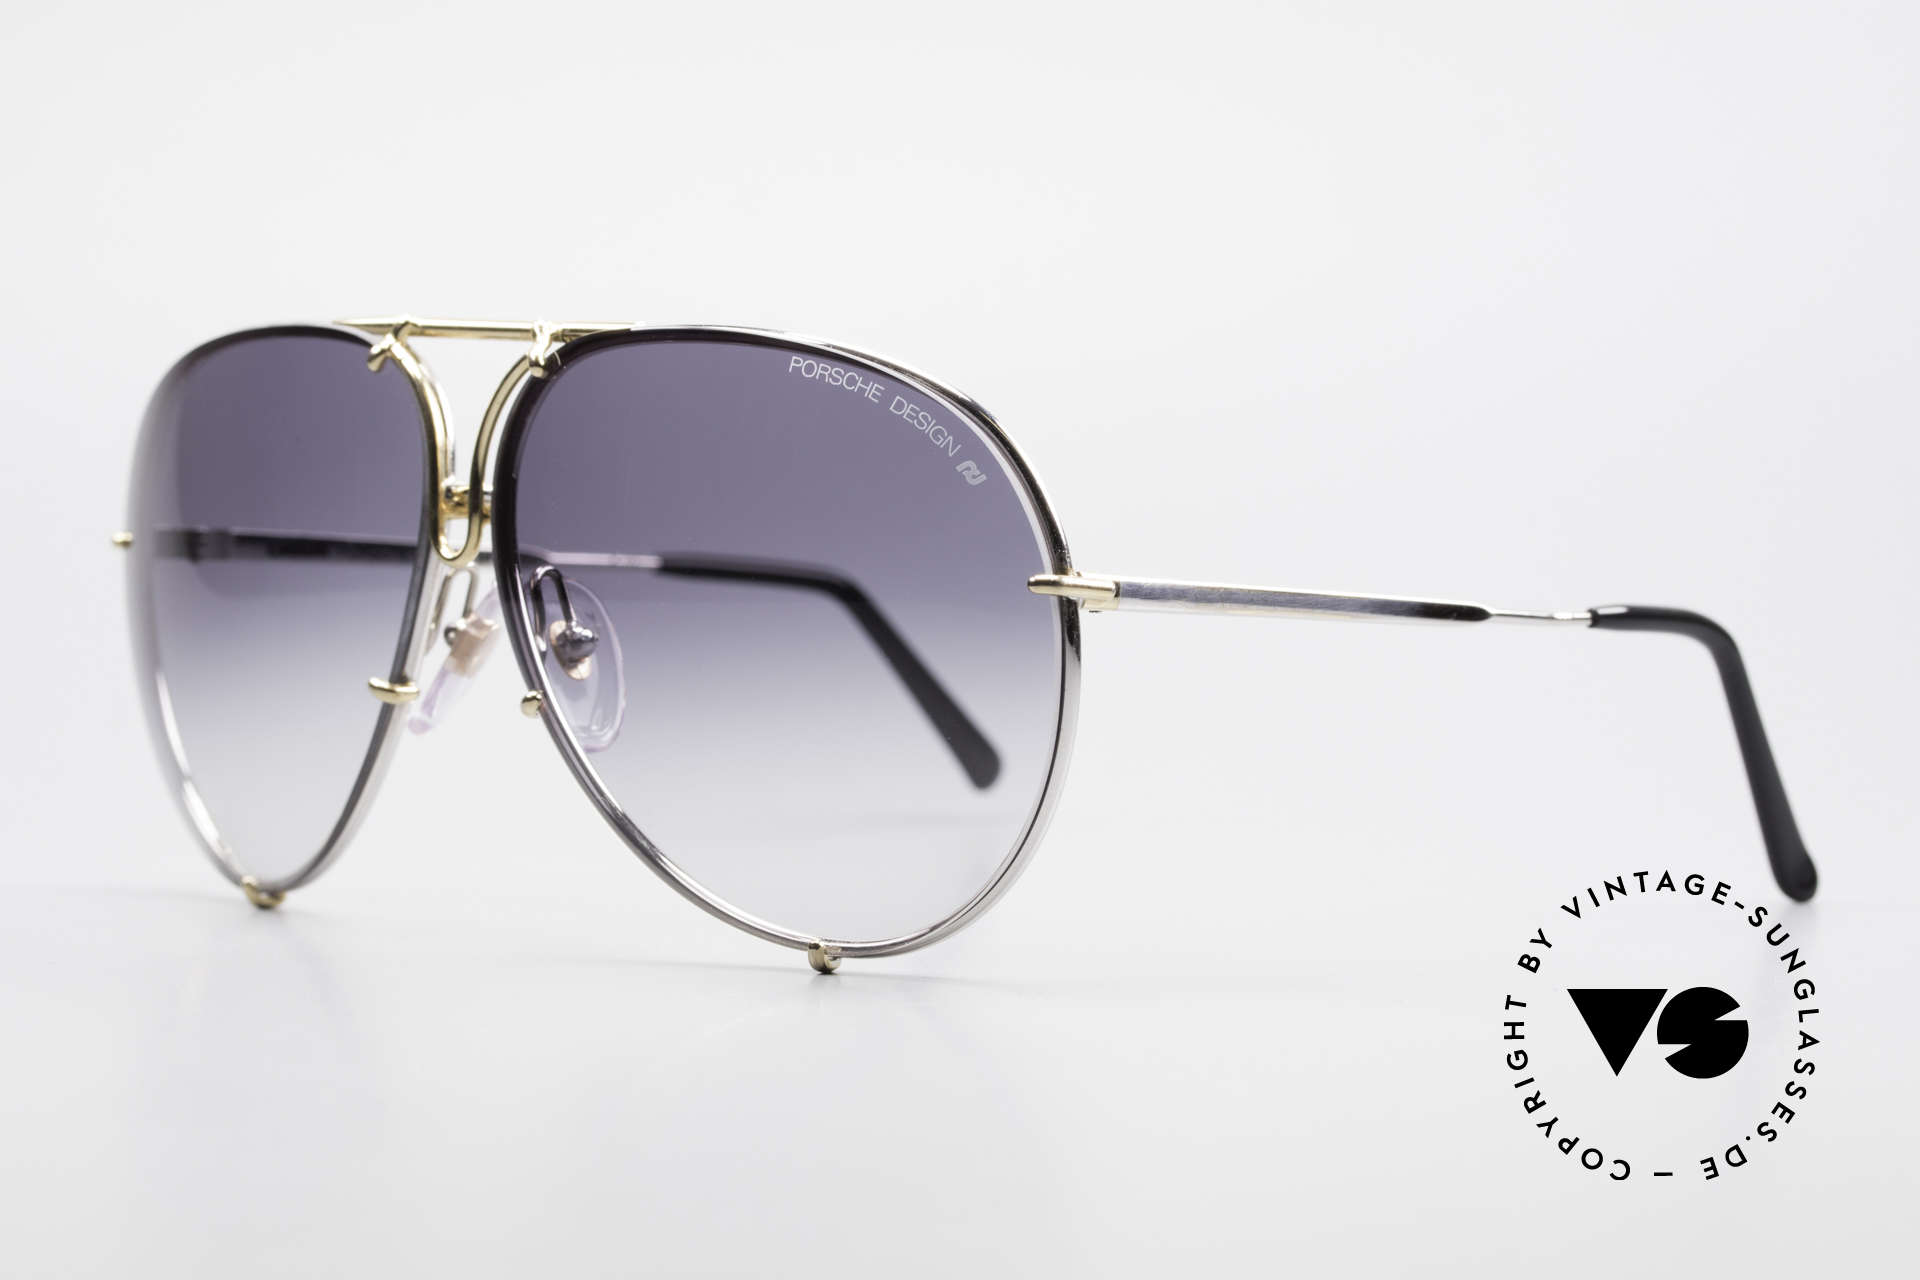 Porsche 5623 Silver Mirrored Sun Lenses, SILVER MIRRORED lenses appear gray on the photos, Made for Men and Women